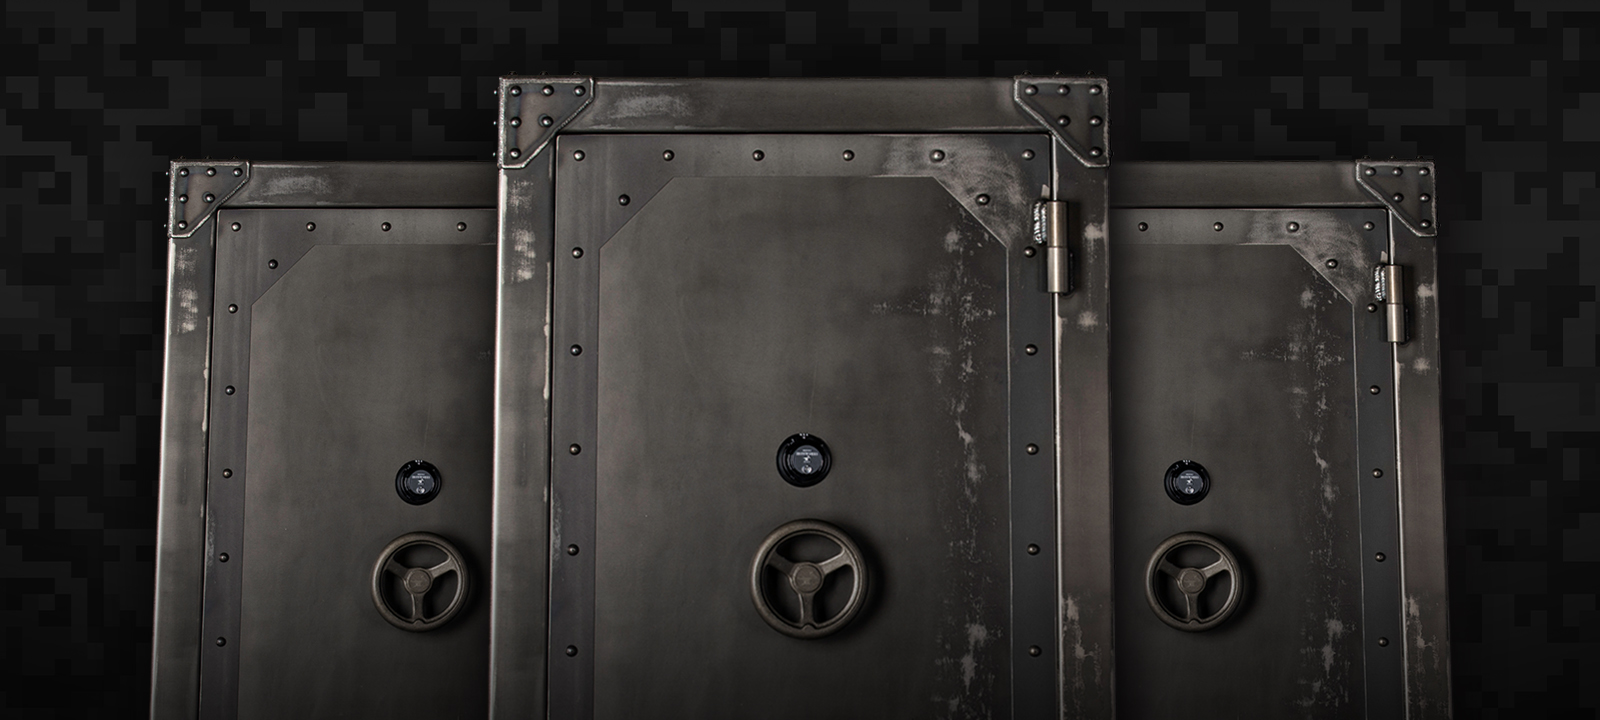 Rhino Metals Ironworks Safes